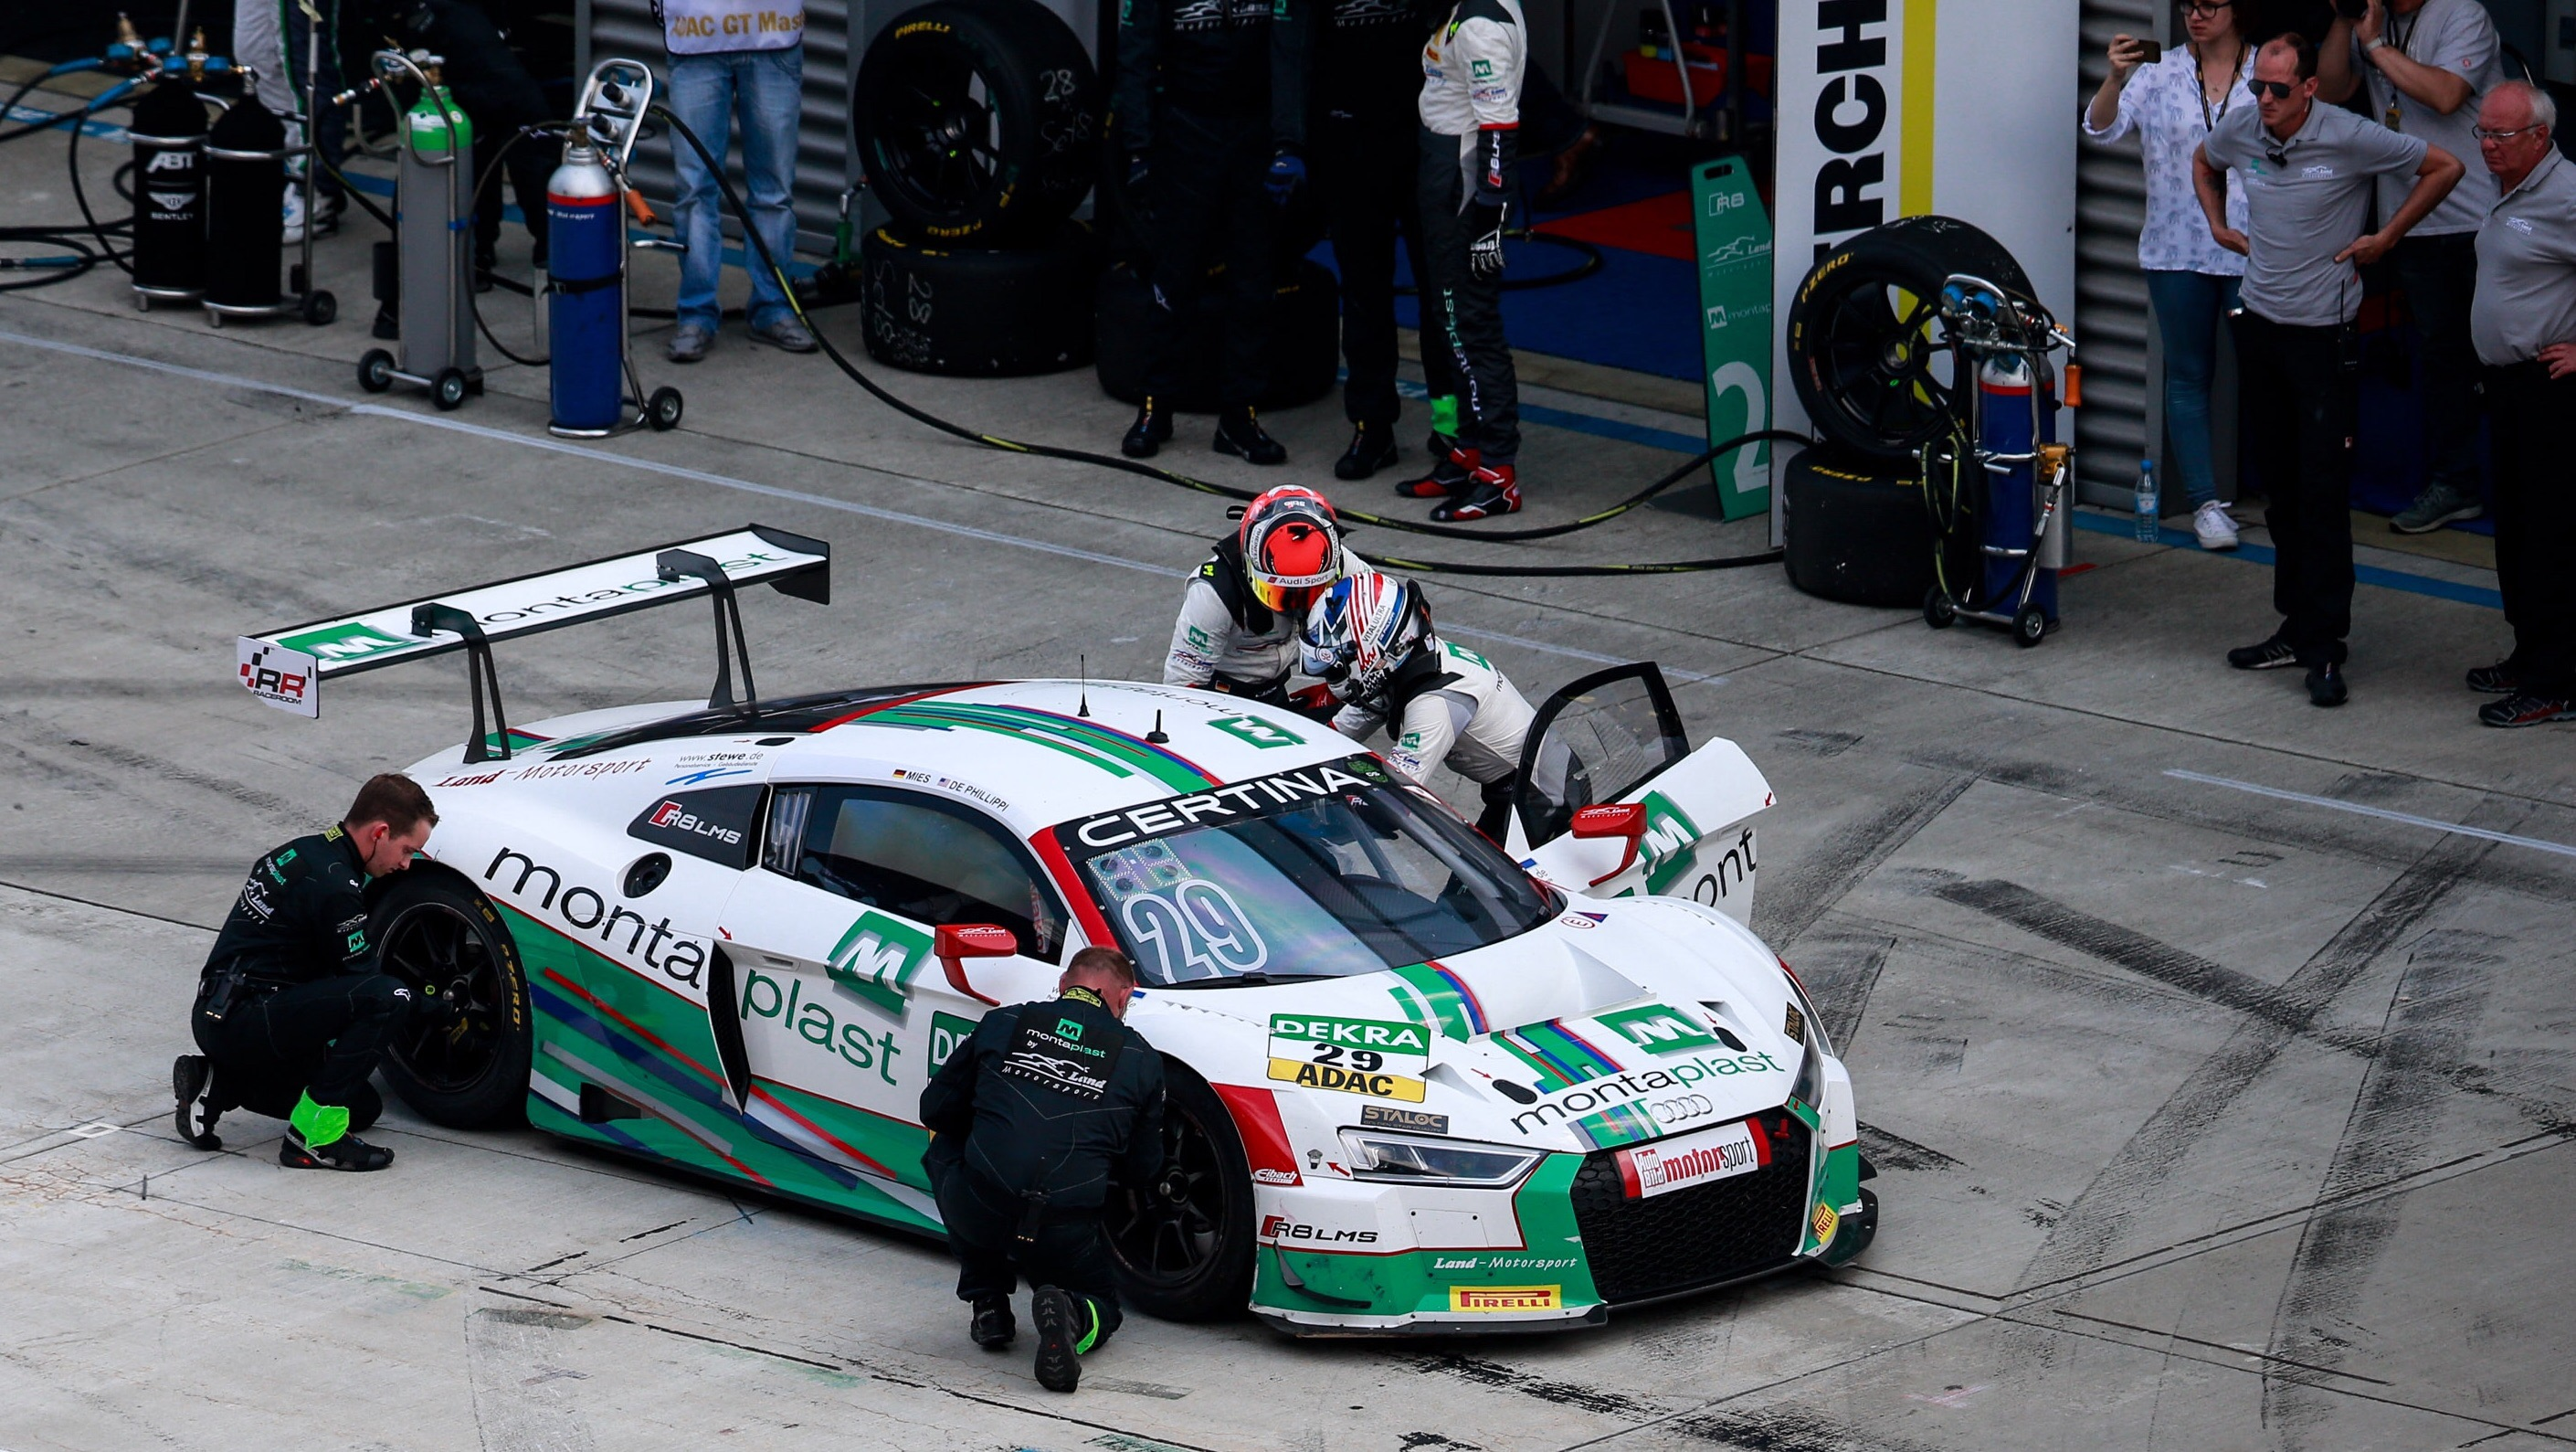 ADAC GT Masters - 3. Event 2016 - Lausitzring, GER - Foto: Gruppe C